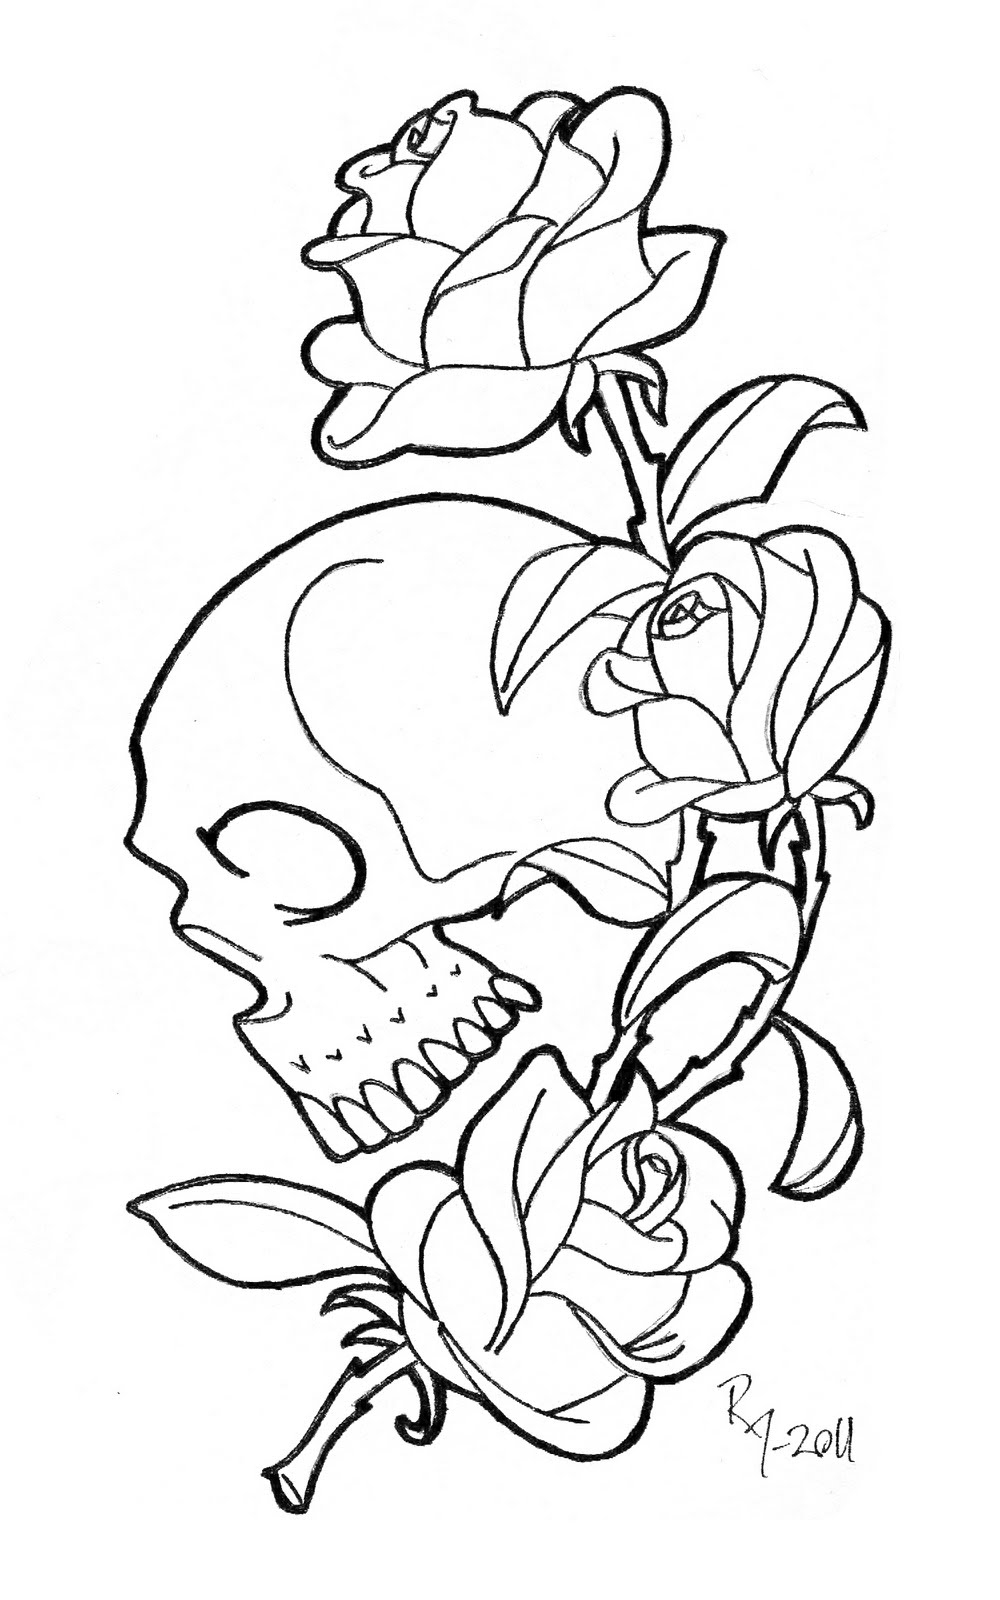 1000x1600 Cool Skull And Roses Coloring Pages Free Coloring Pages Download